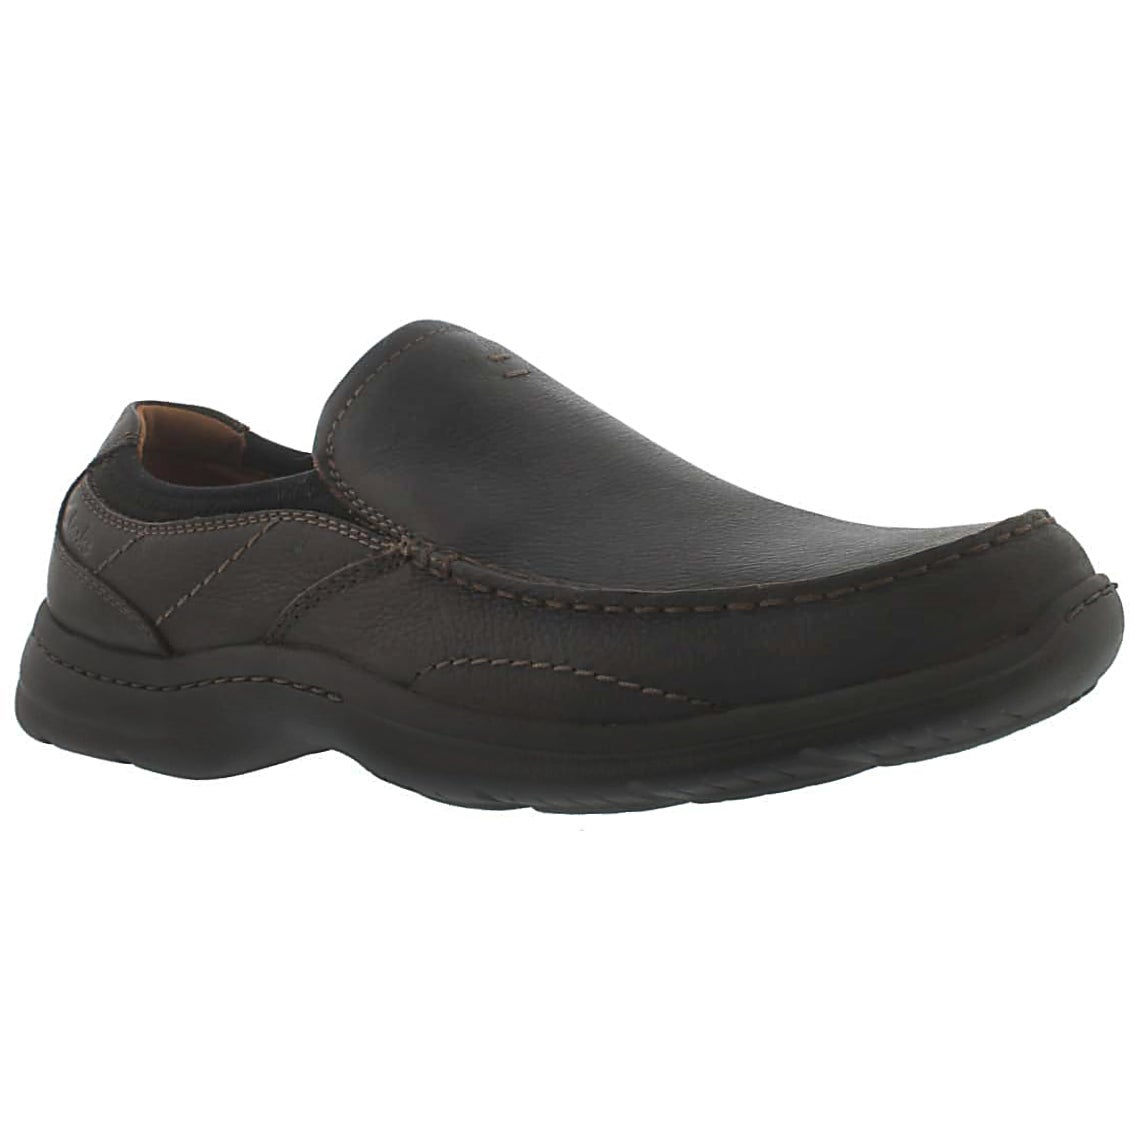 Men's NILAND ENERGY brown slip-ons - Extra wide